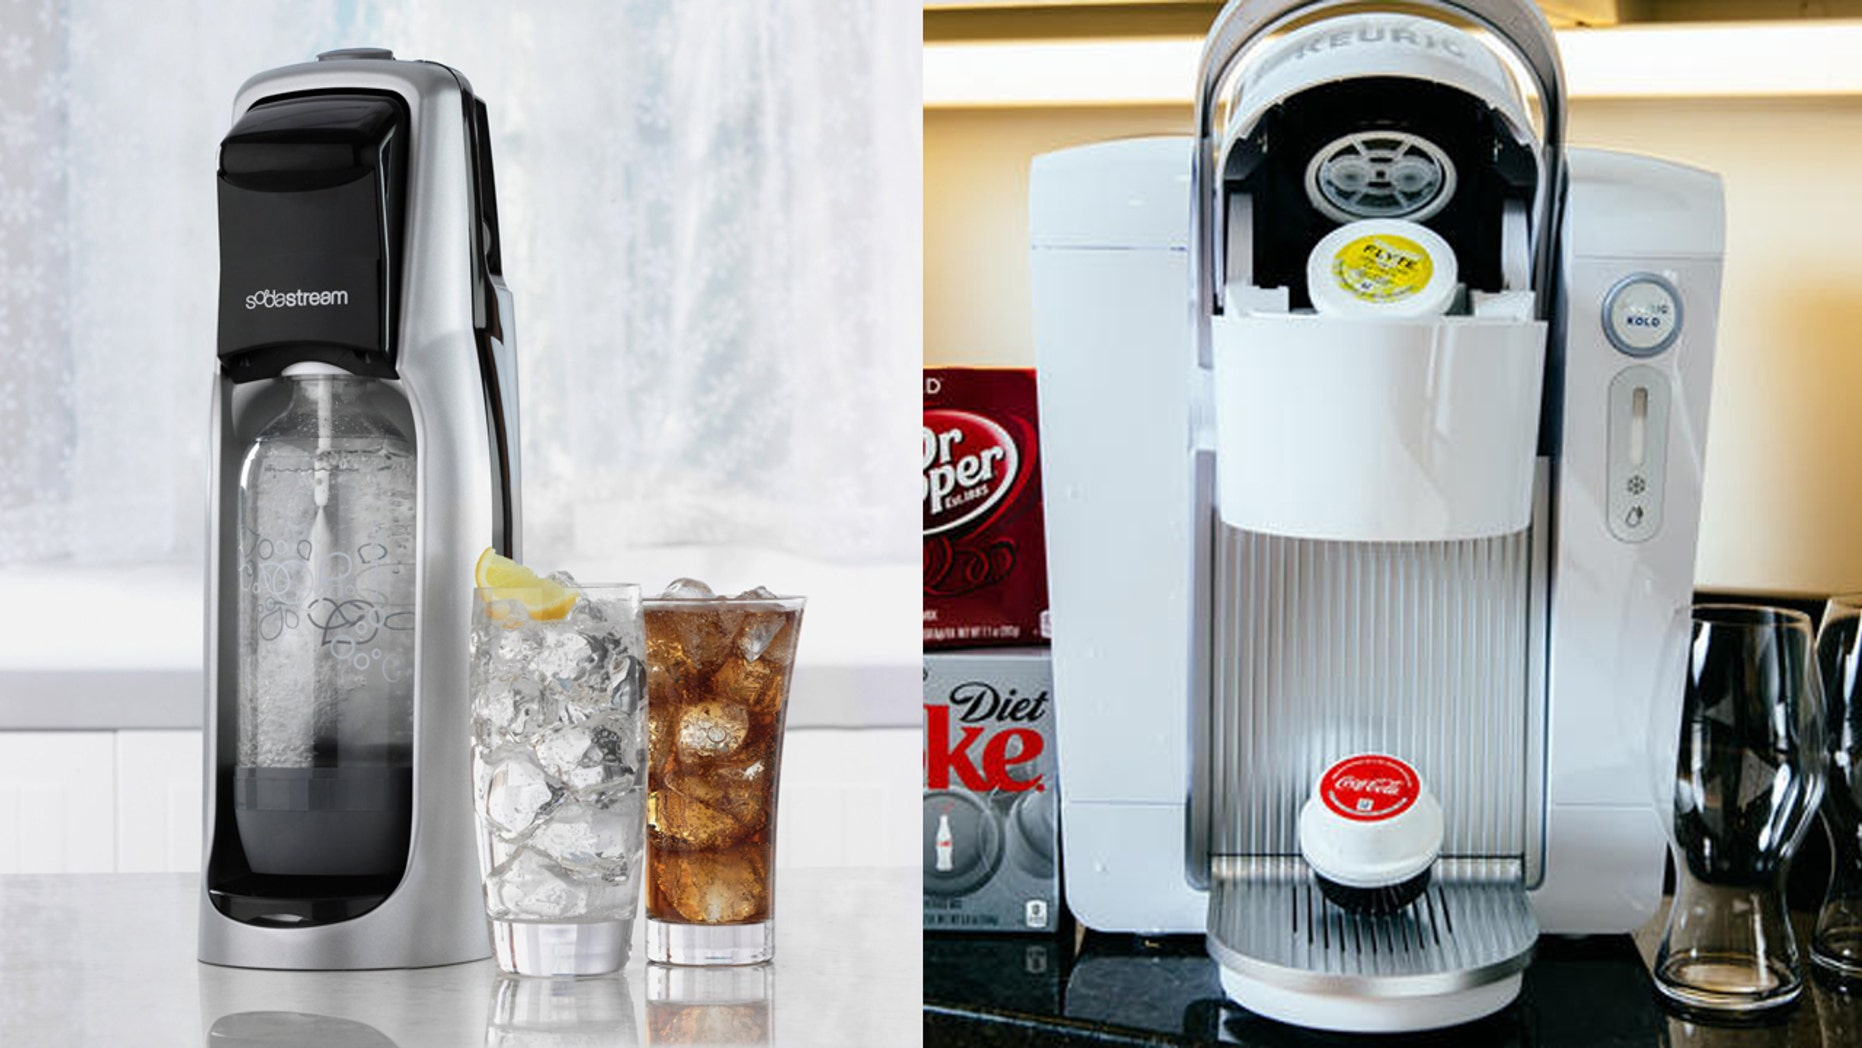 Swap that old Keurig Kold for a brand new SodaStream.